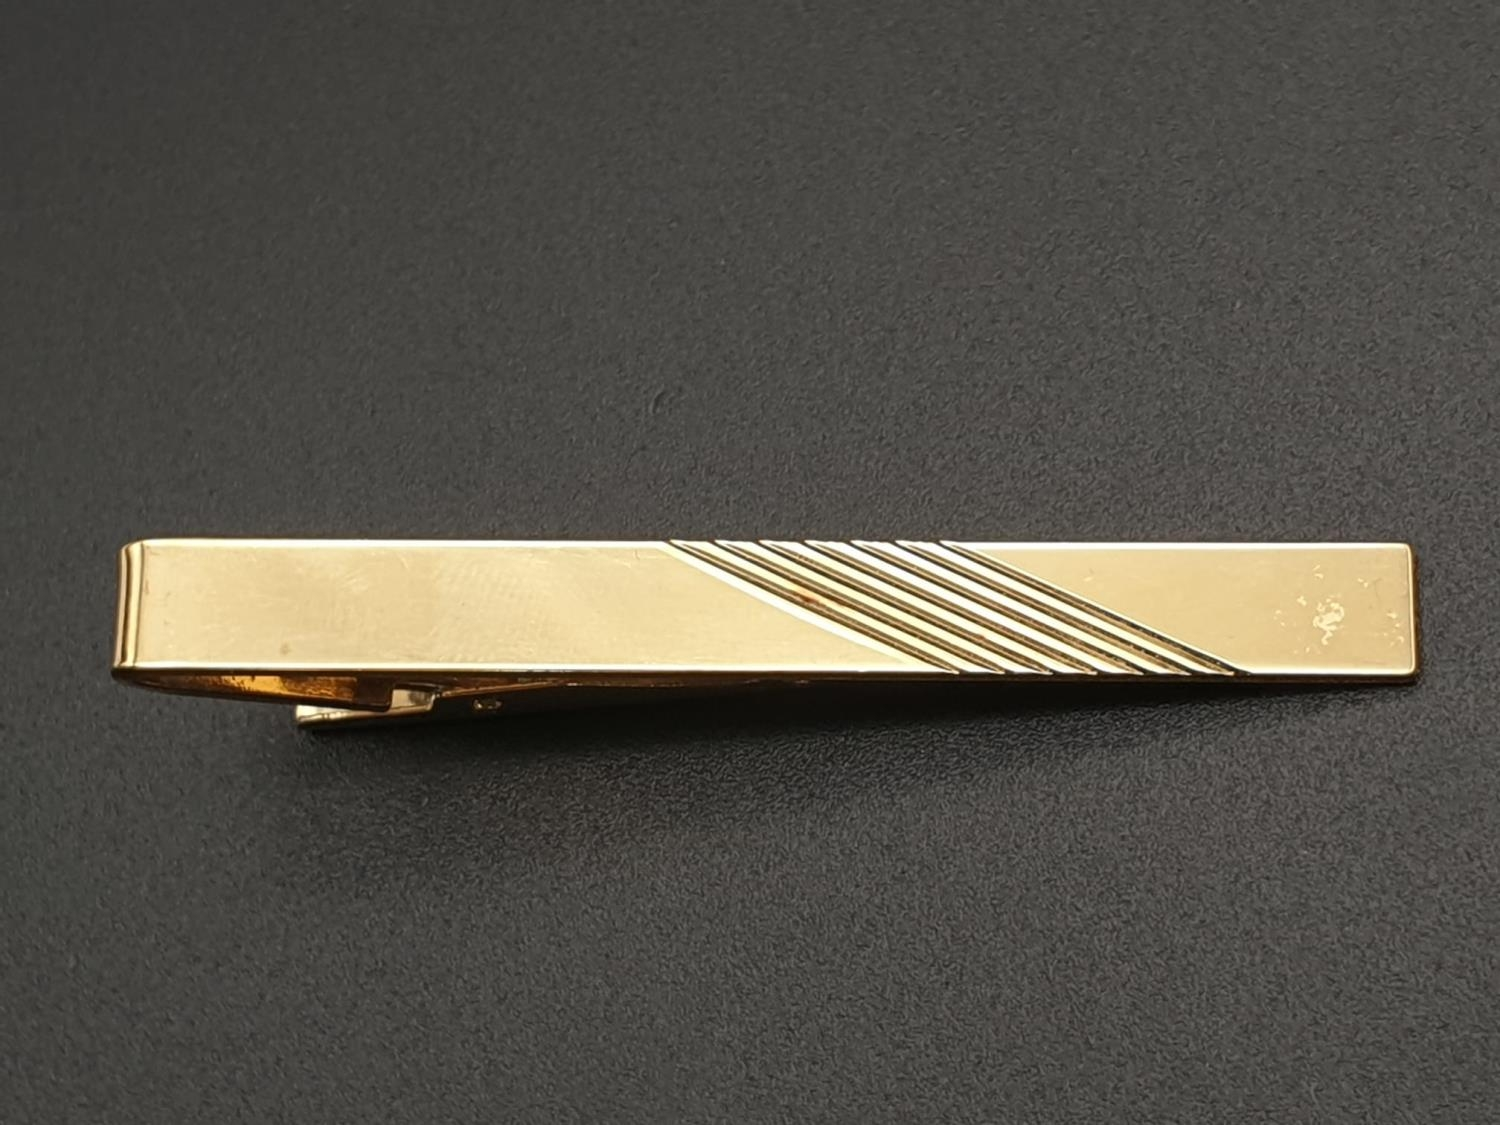 Pair of Duchamp Harlequin Cufflinks and a Gold Plated Stratton Tie clip - 6cm - Image 5 of 7